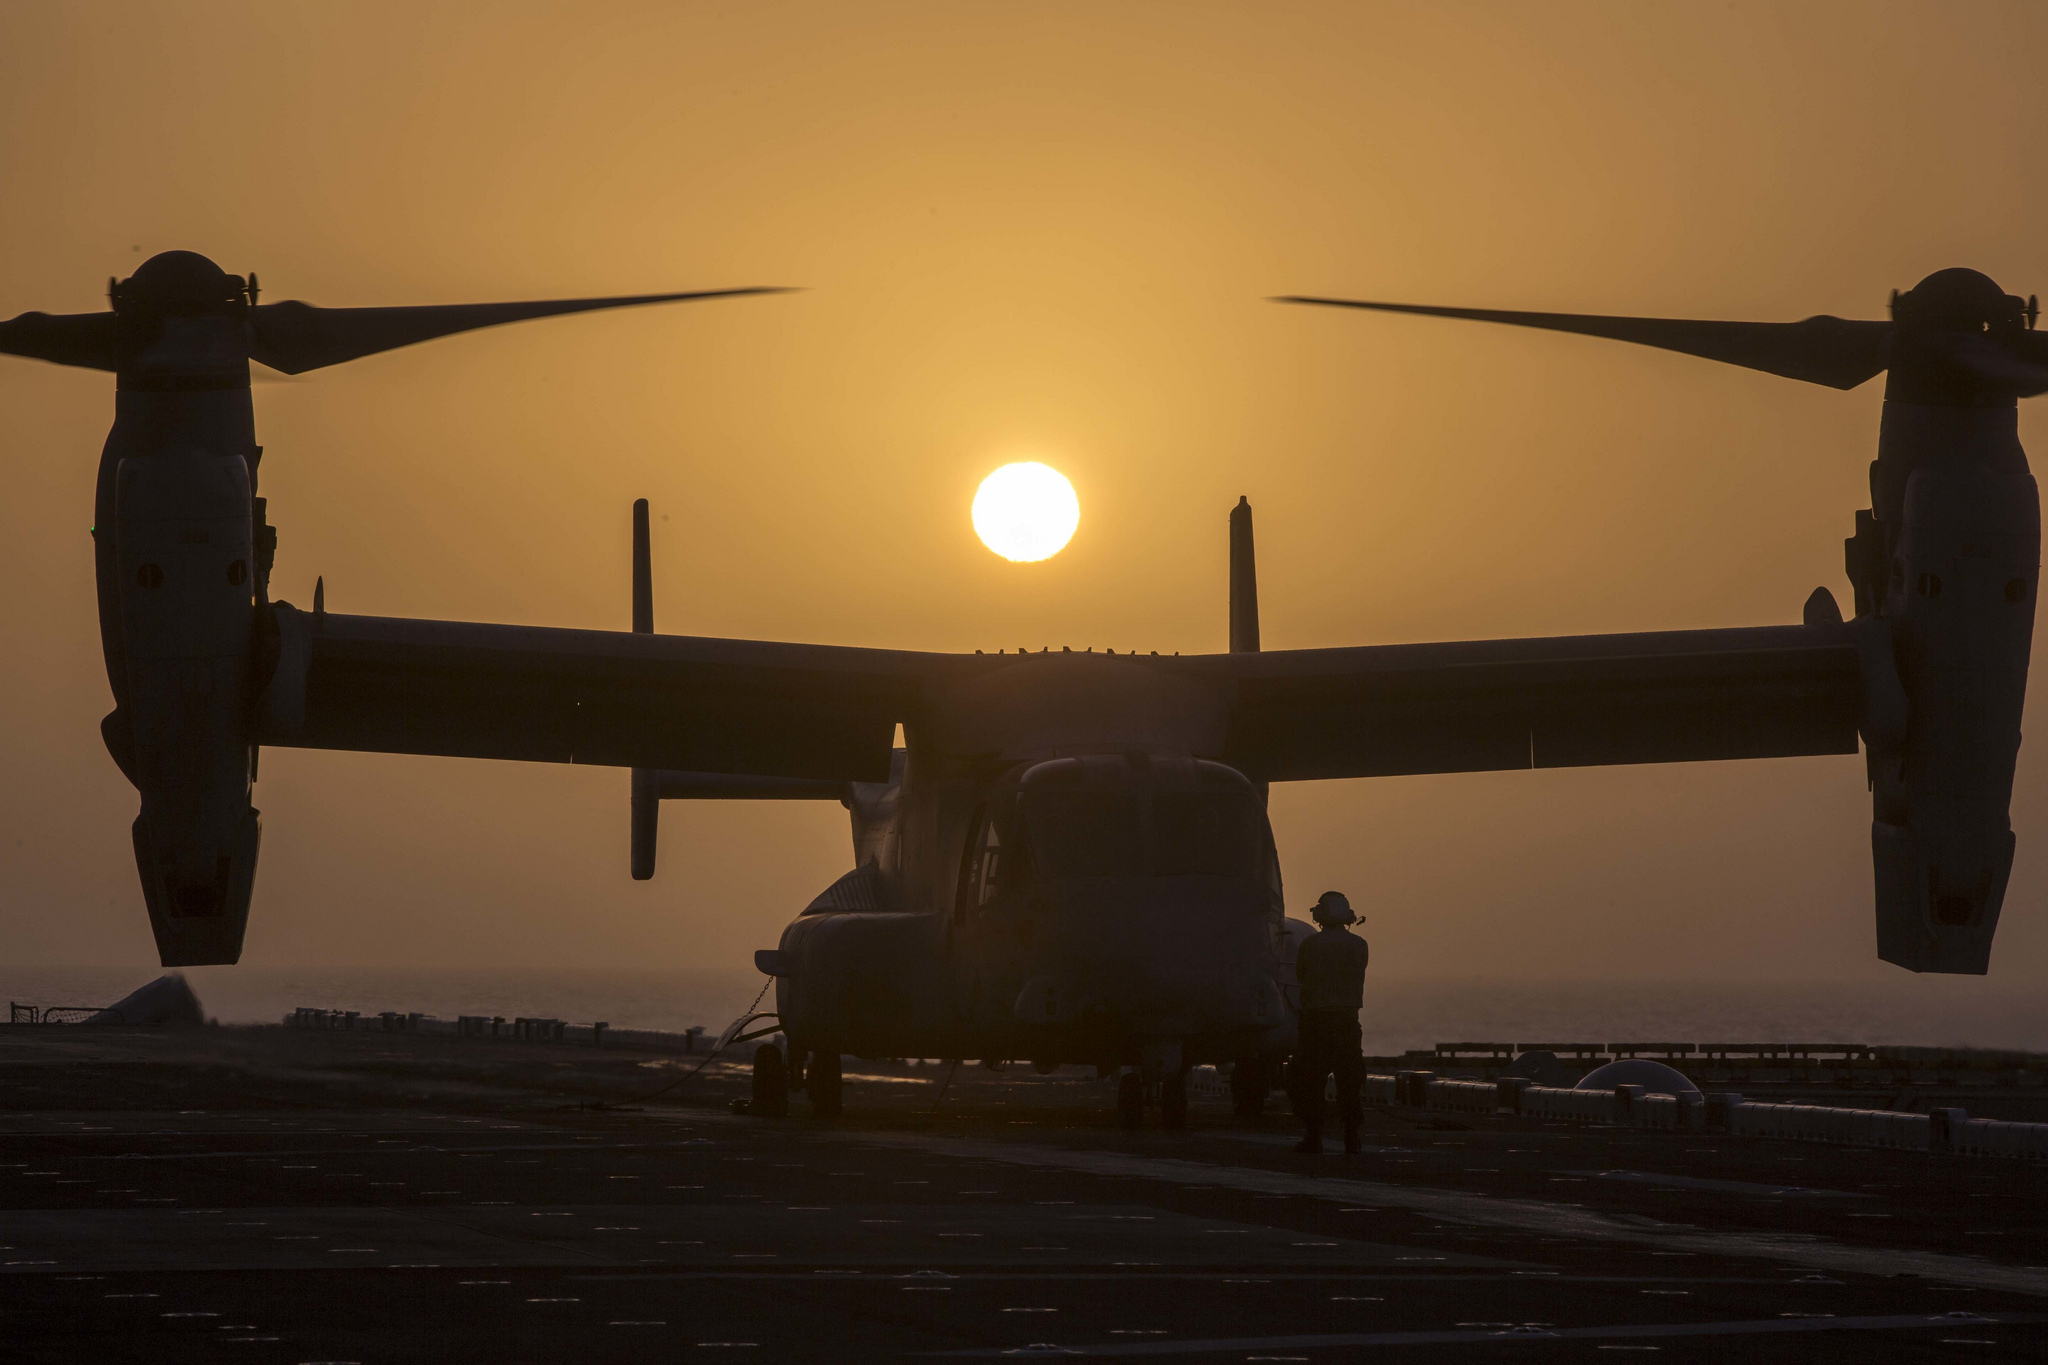 A Marine Corps MV-22B Osprey prepares for takeoff Jan. 5, 2019, while aboard the Wasp-class amphibious assault ship USS Essex (LHD 2) in the Arabian Sea. (Sgt. Francisco J. Diaz Jr./Marine Corps)